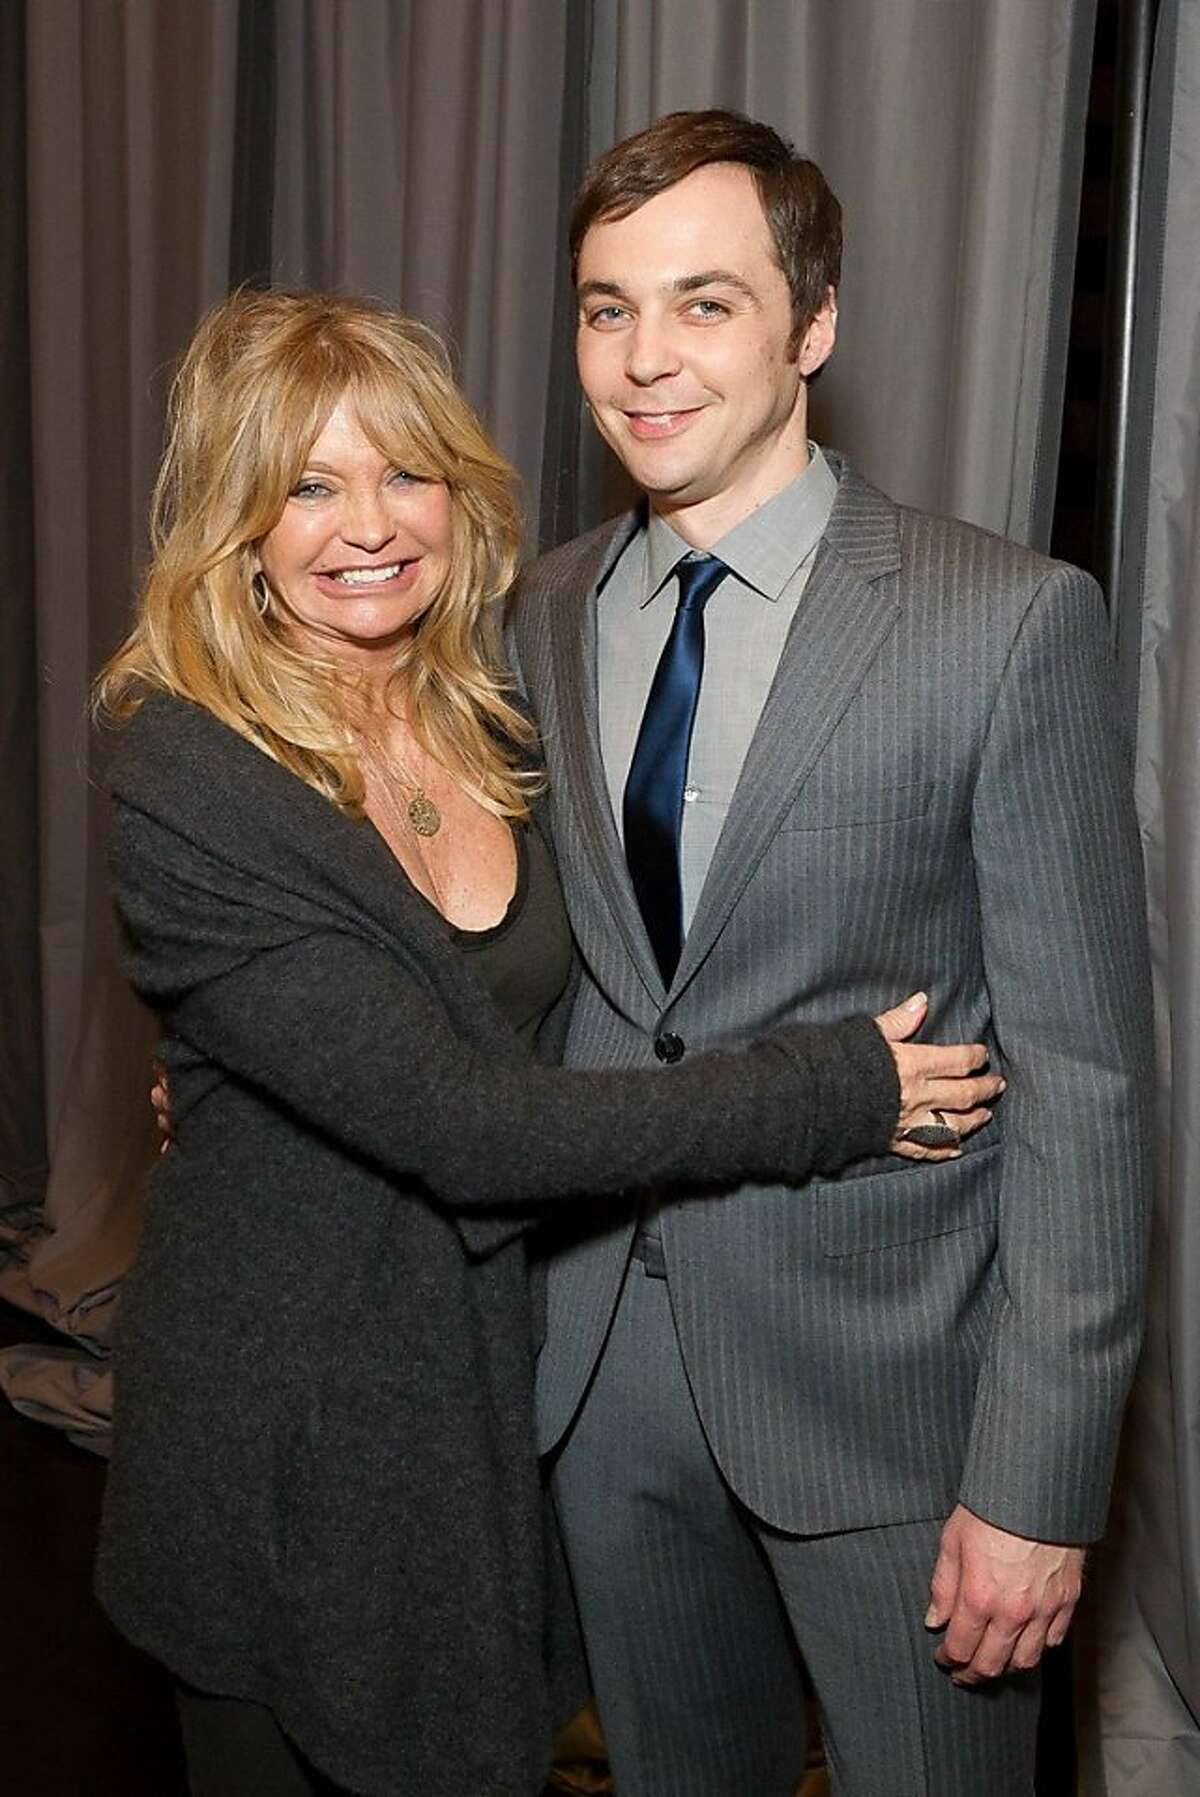 Goldie Hawn and Jim Parsons attend the third annual TechFellow Awards at SFMOMA on Feb. 22.